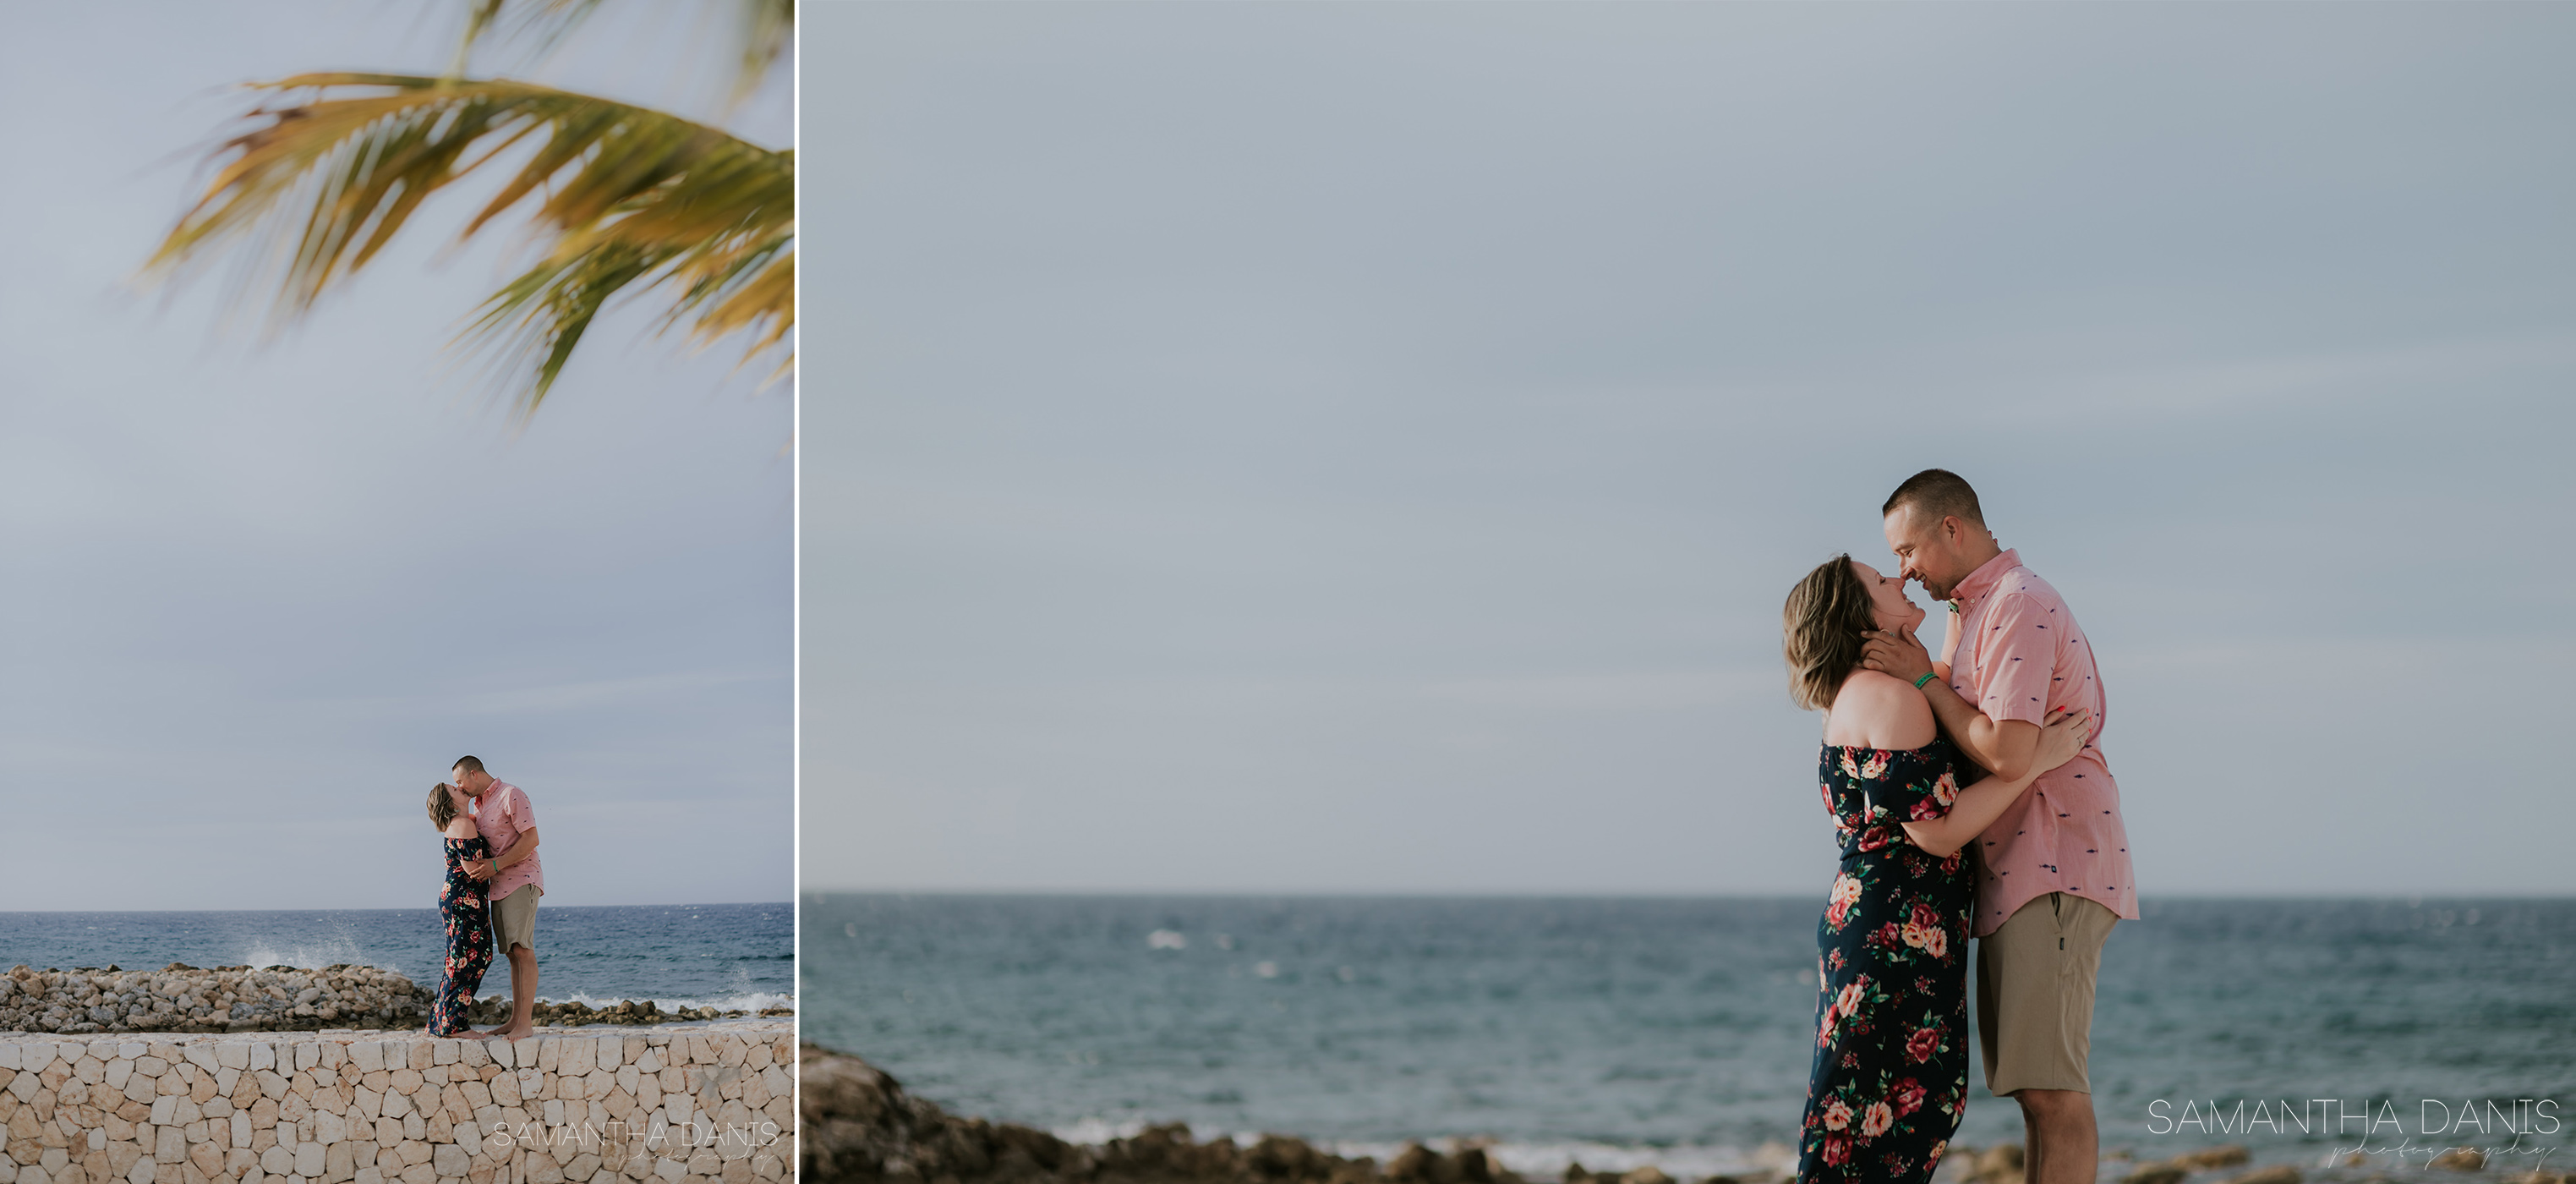 Jamaica Portrait session. Sunset portrait session. Ottawa Wedding Photographer. Samantha Danis Photography